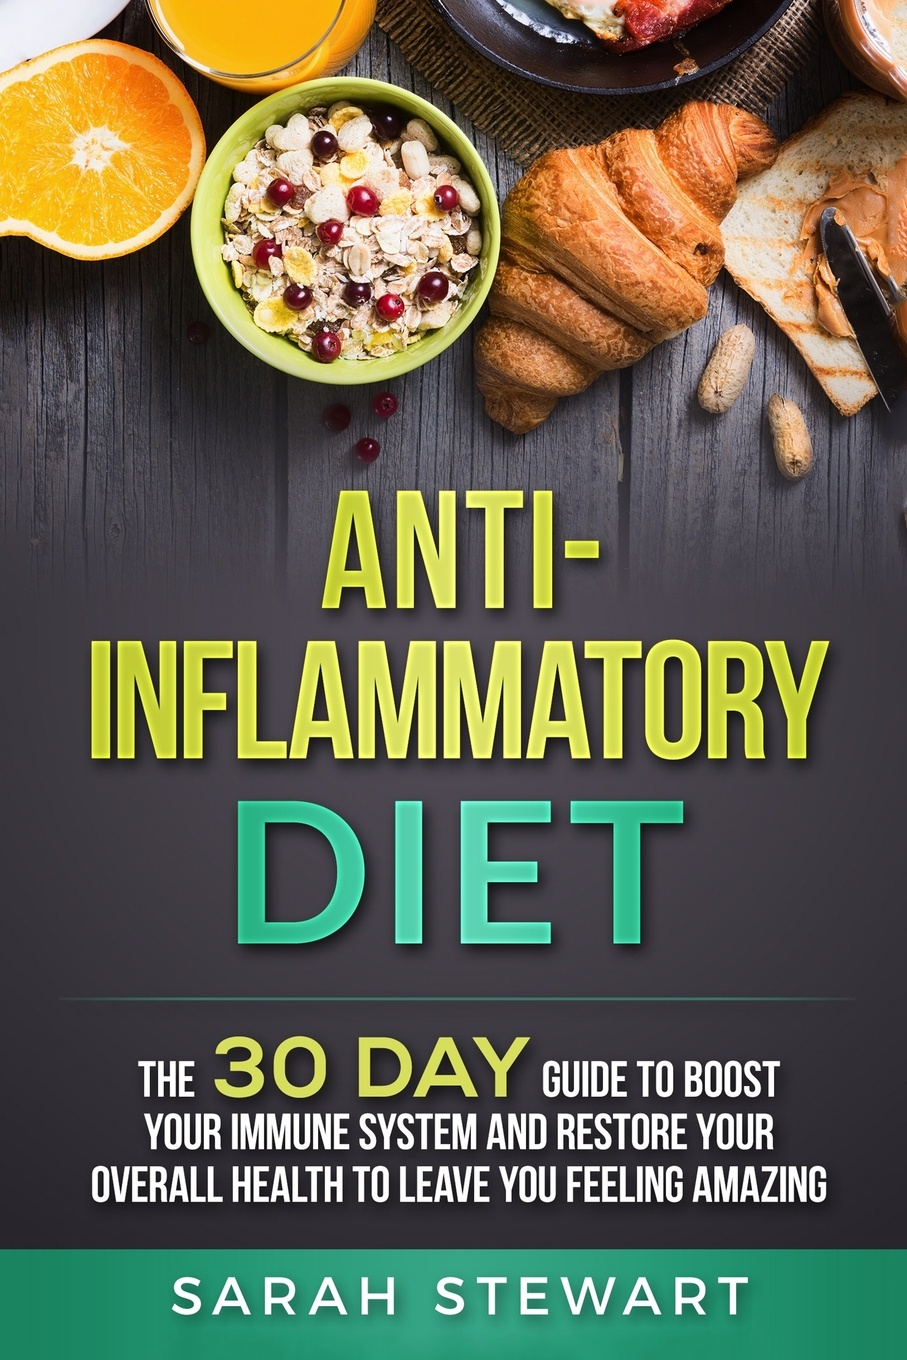 Anti-Inflammatory Diet. The 30 Day Guide to Boost Your Immune System and Restore Your Overall Health to Live a Better Lifestyle